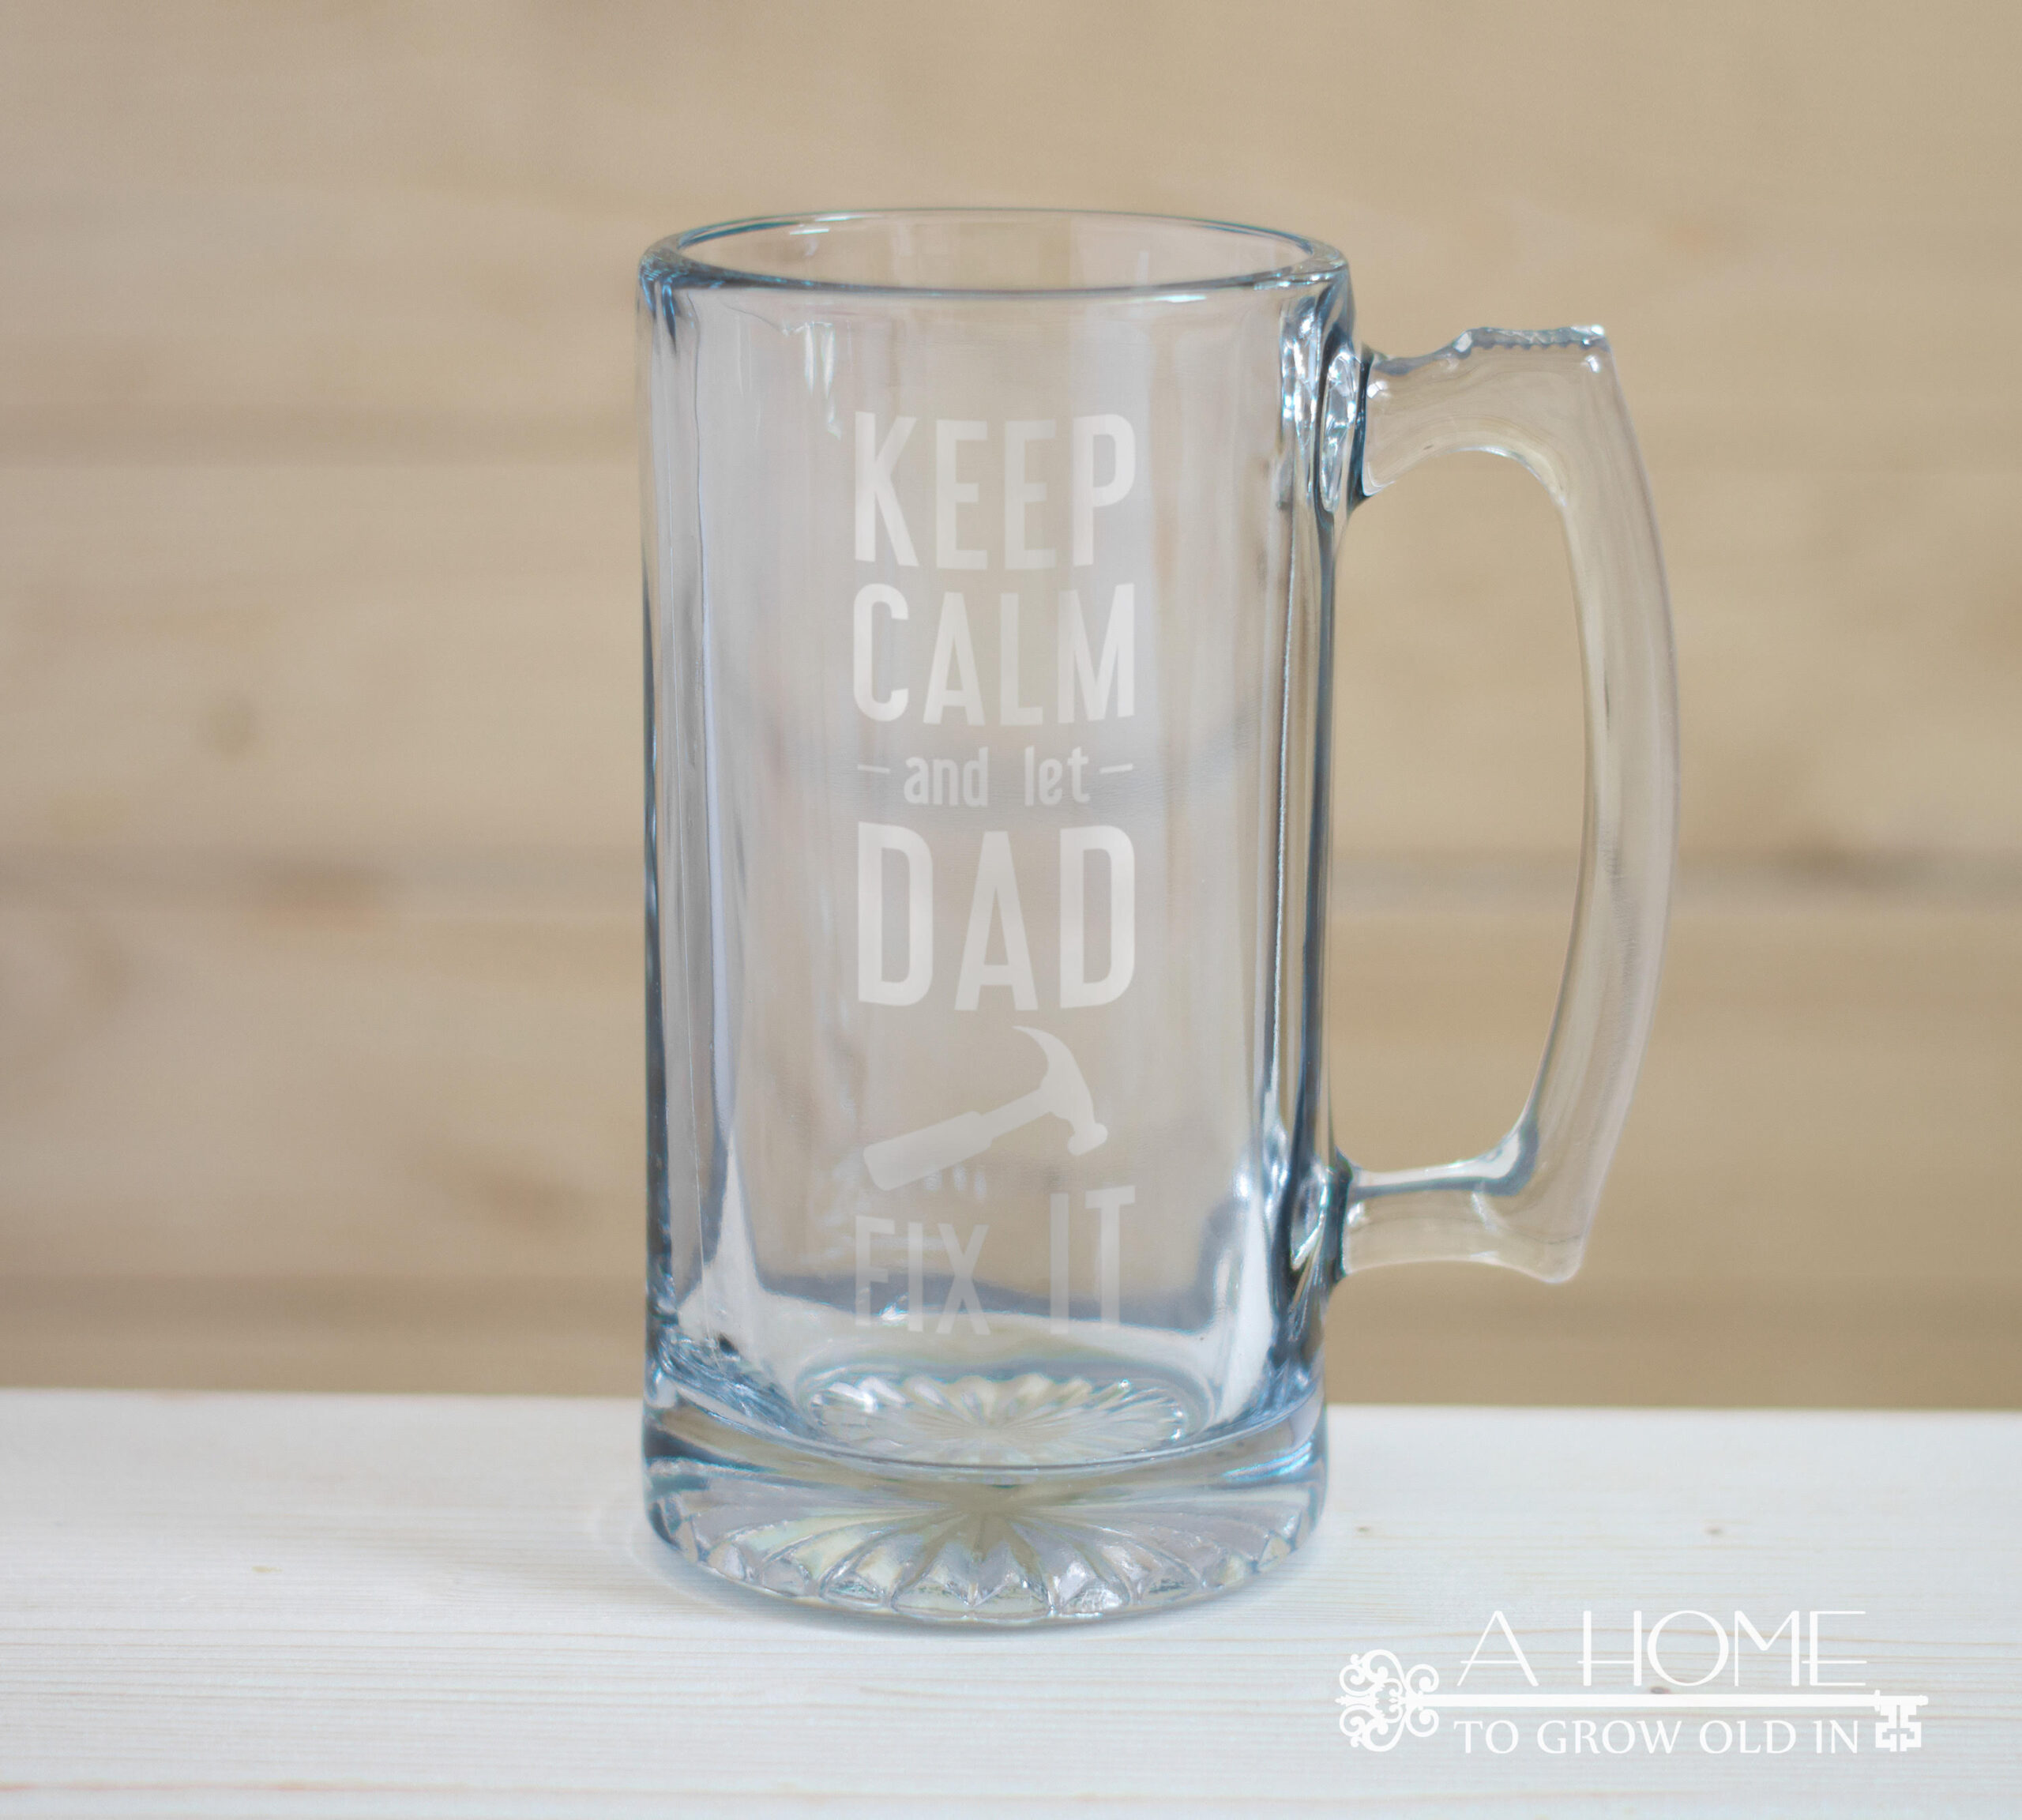 Father's Day SVG on a beer mug